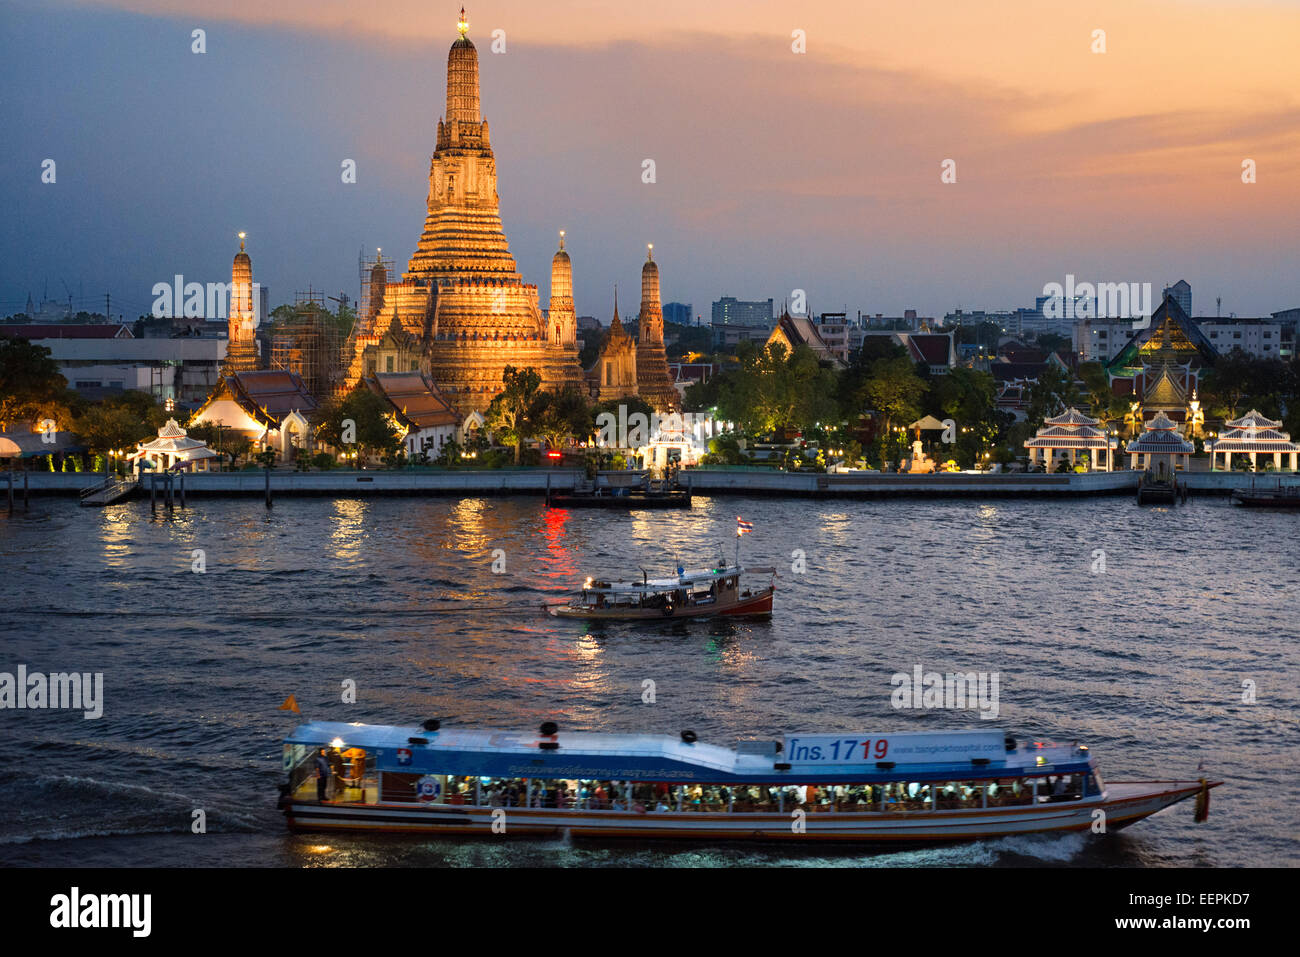 Landscape In Sunset Of Wat Arun Temple From Chao Praya